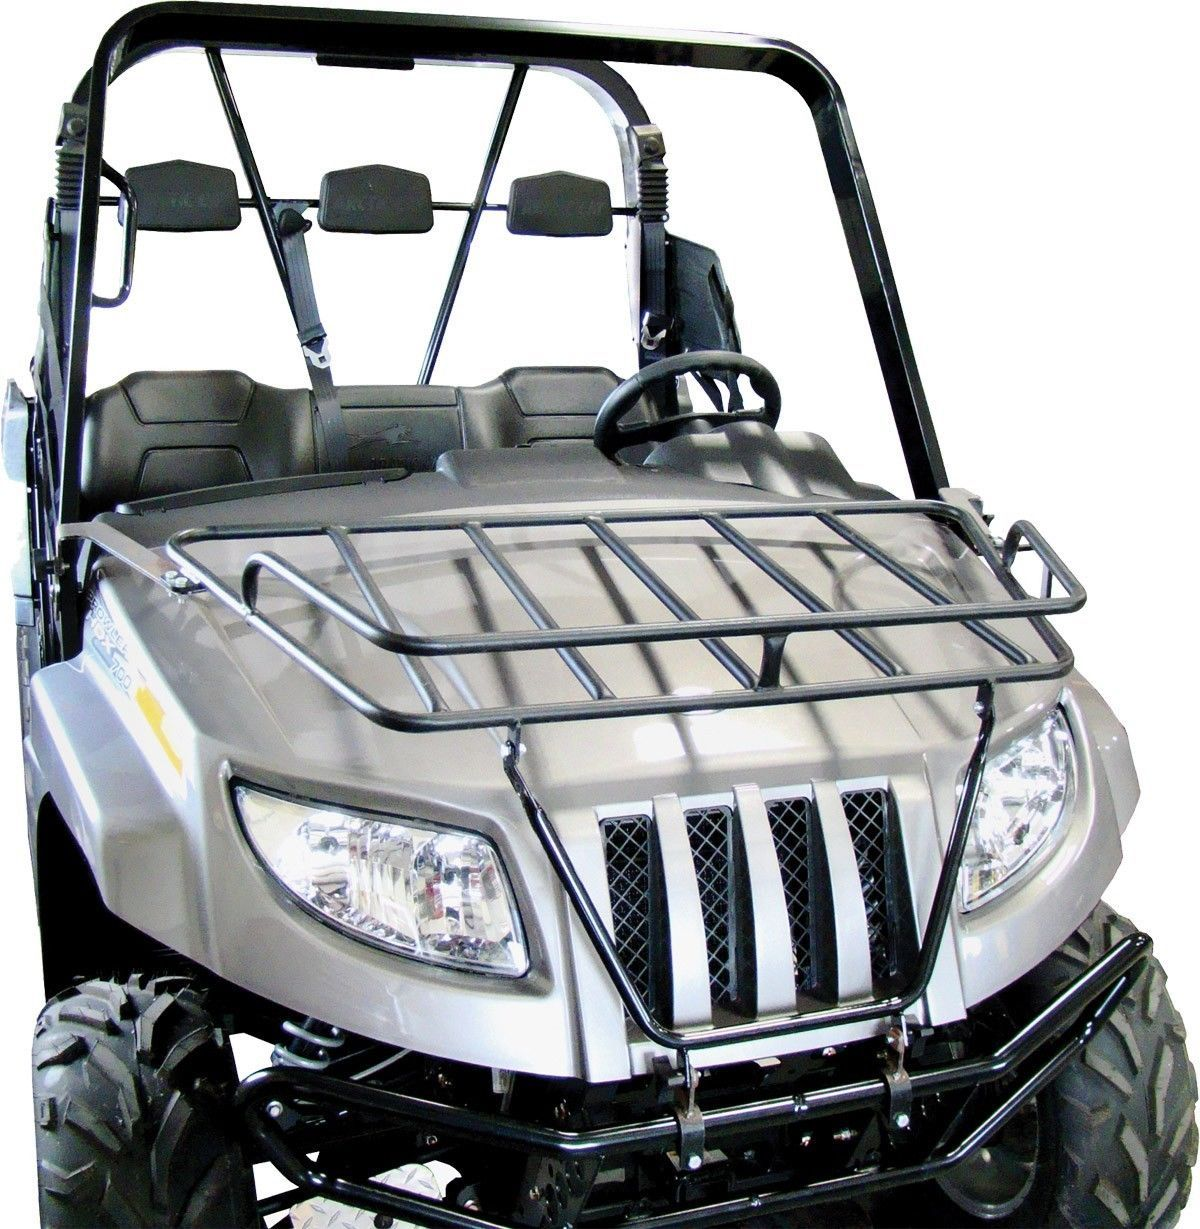 Rear Cargo Rack with Tailgate by Razorback Offroad for